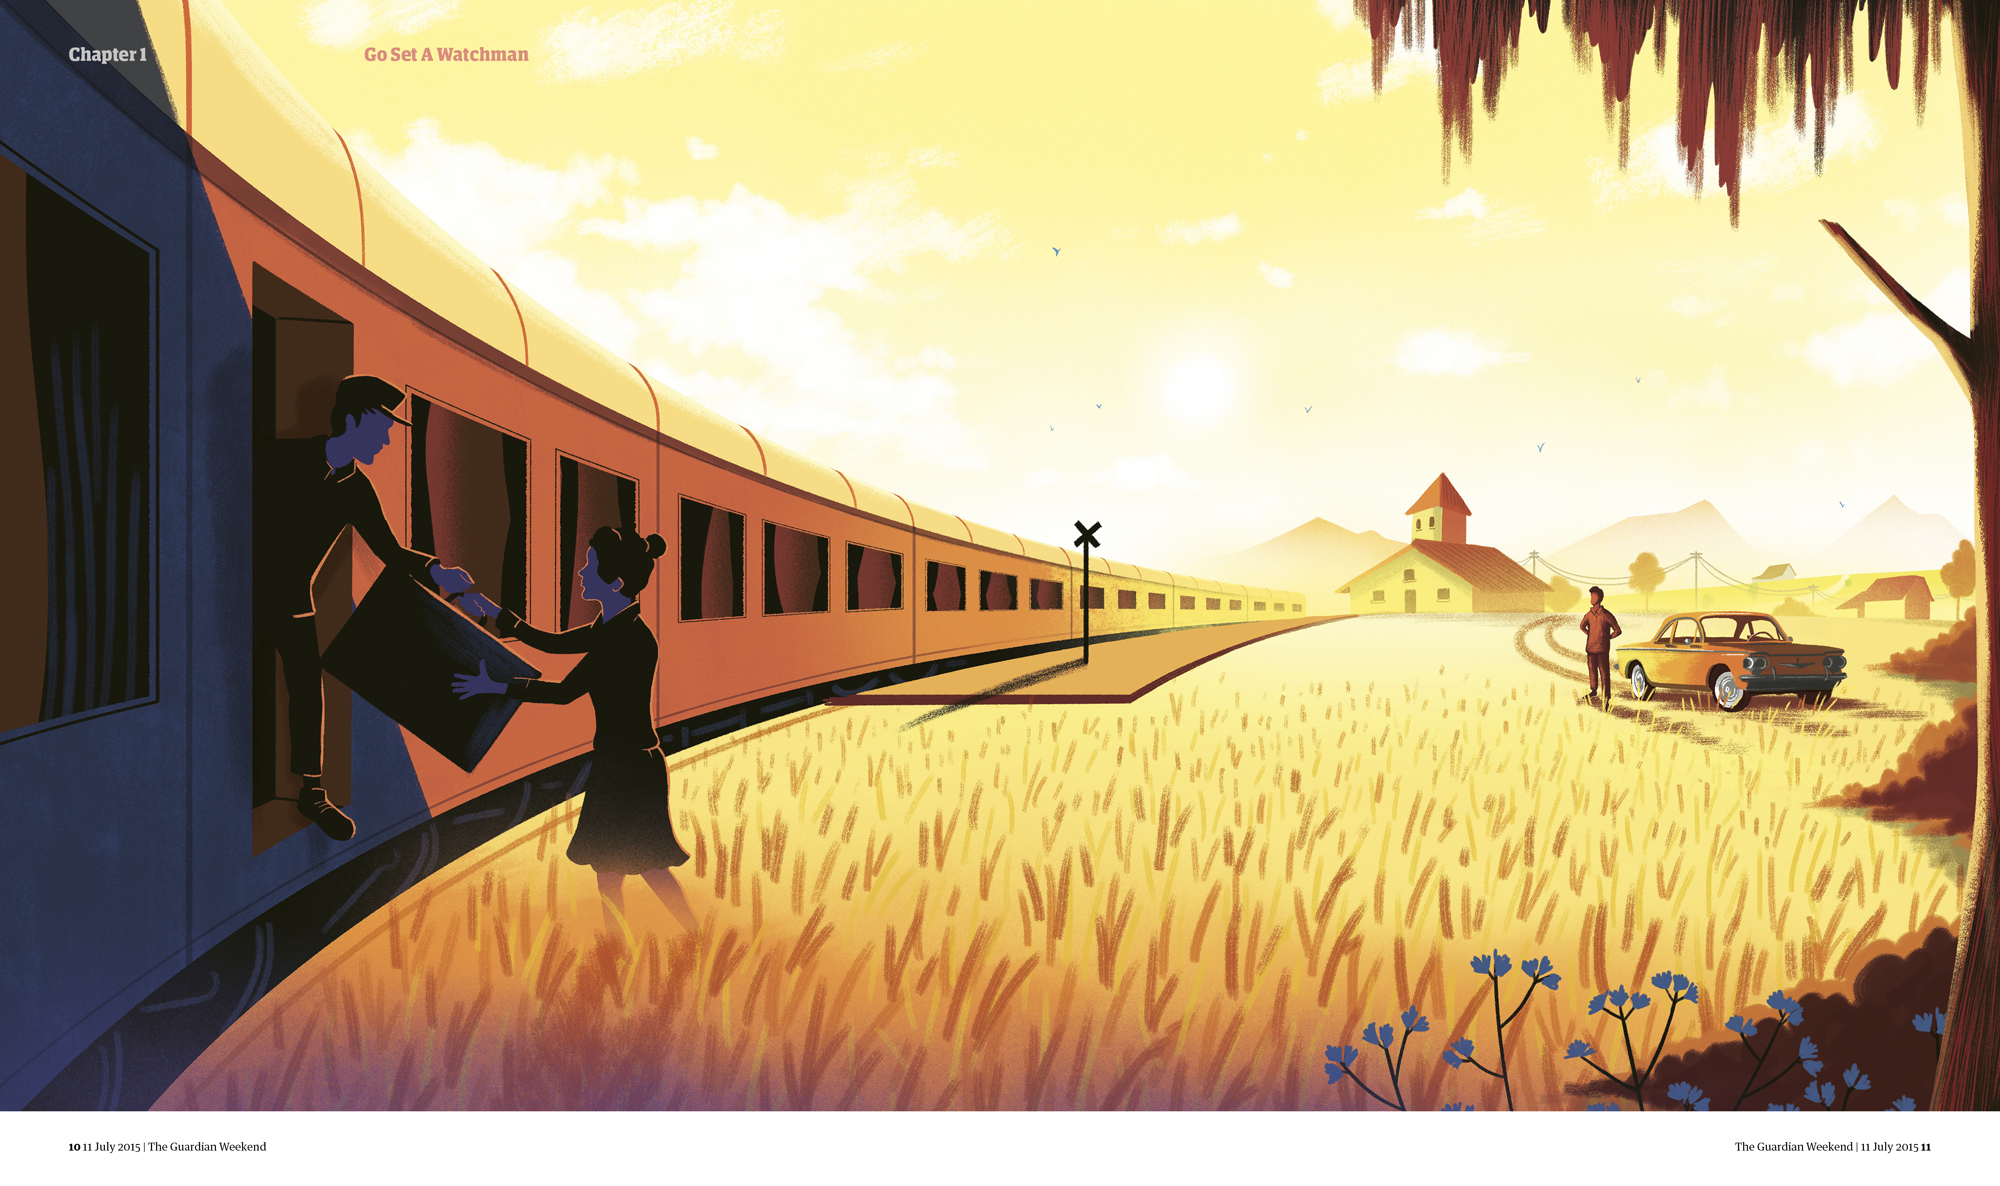 The Guardian's illustration for Harper Lee's Go Set A Watchman launch